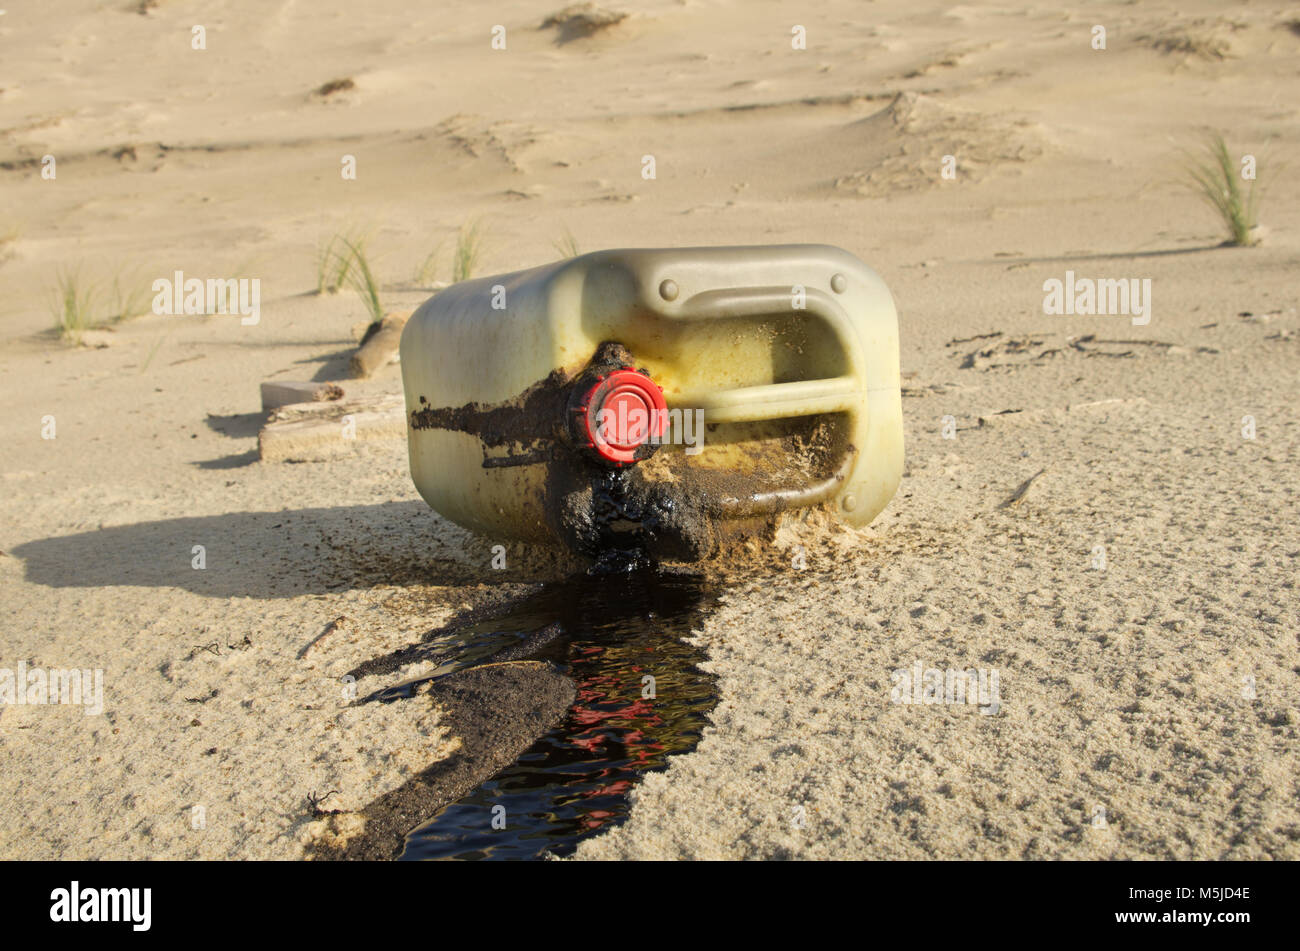 oil spilled on a beach. Water pollution - Stock Image